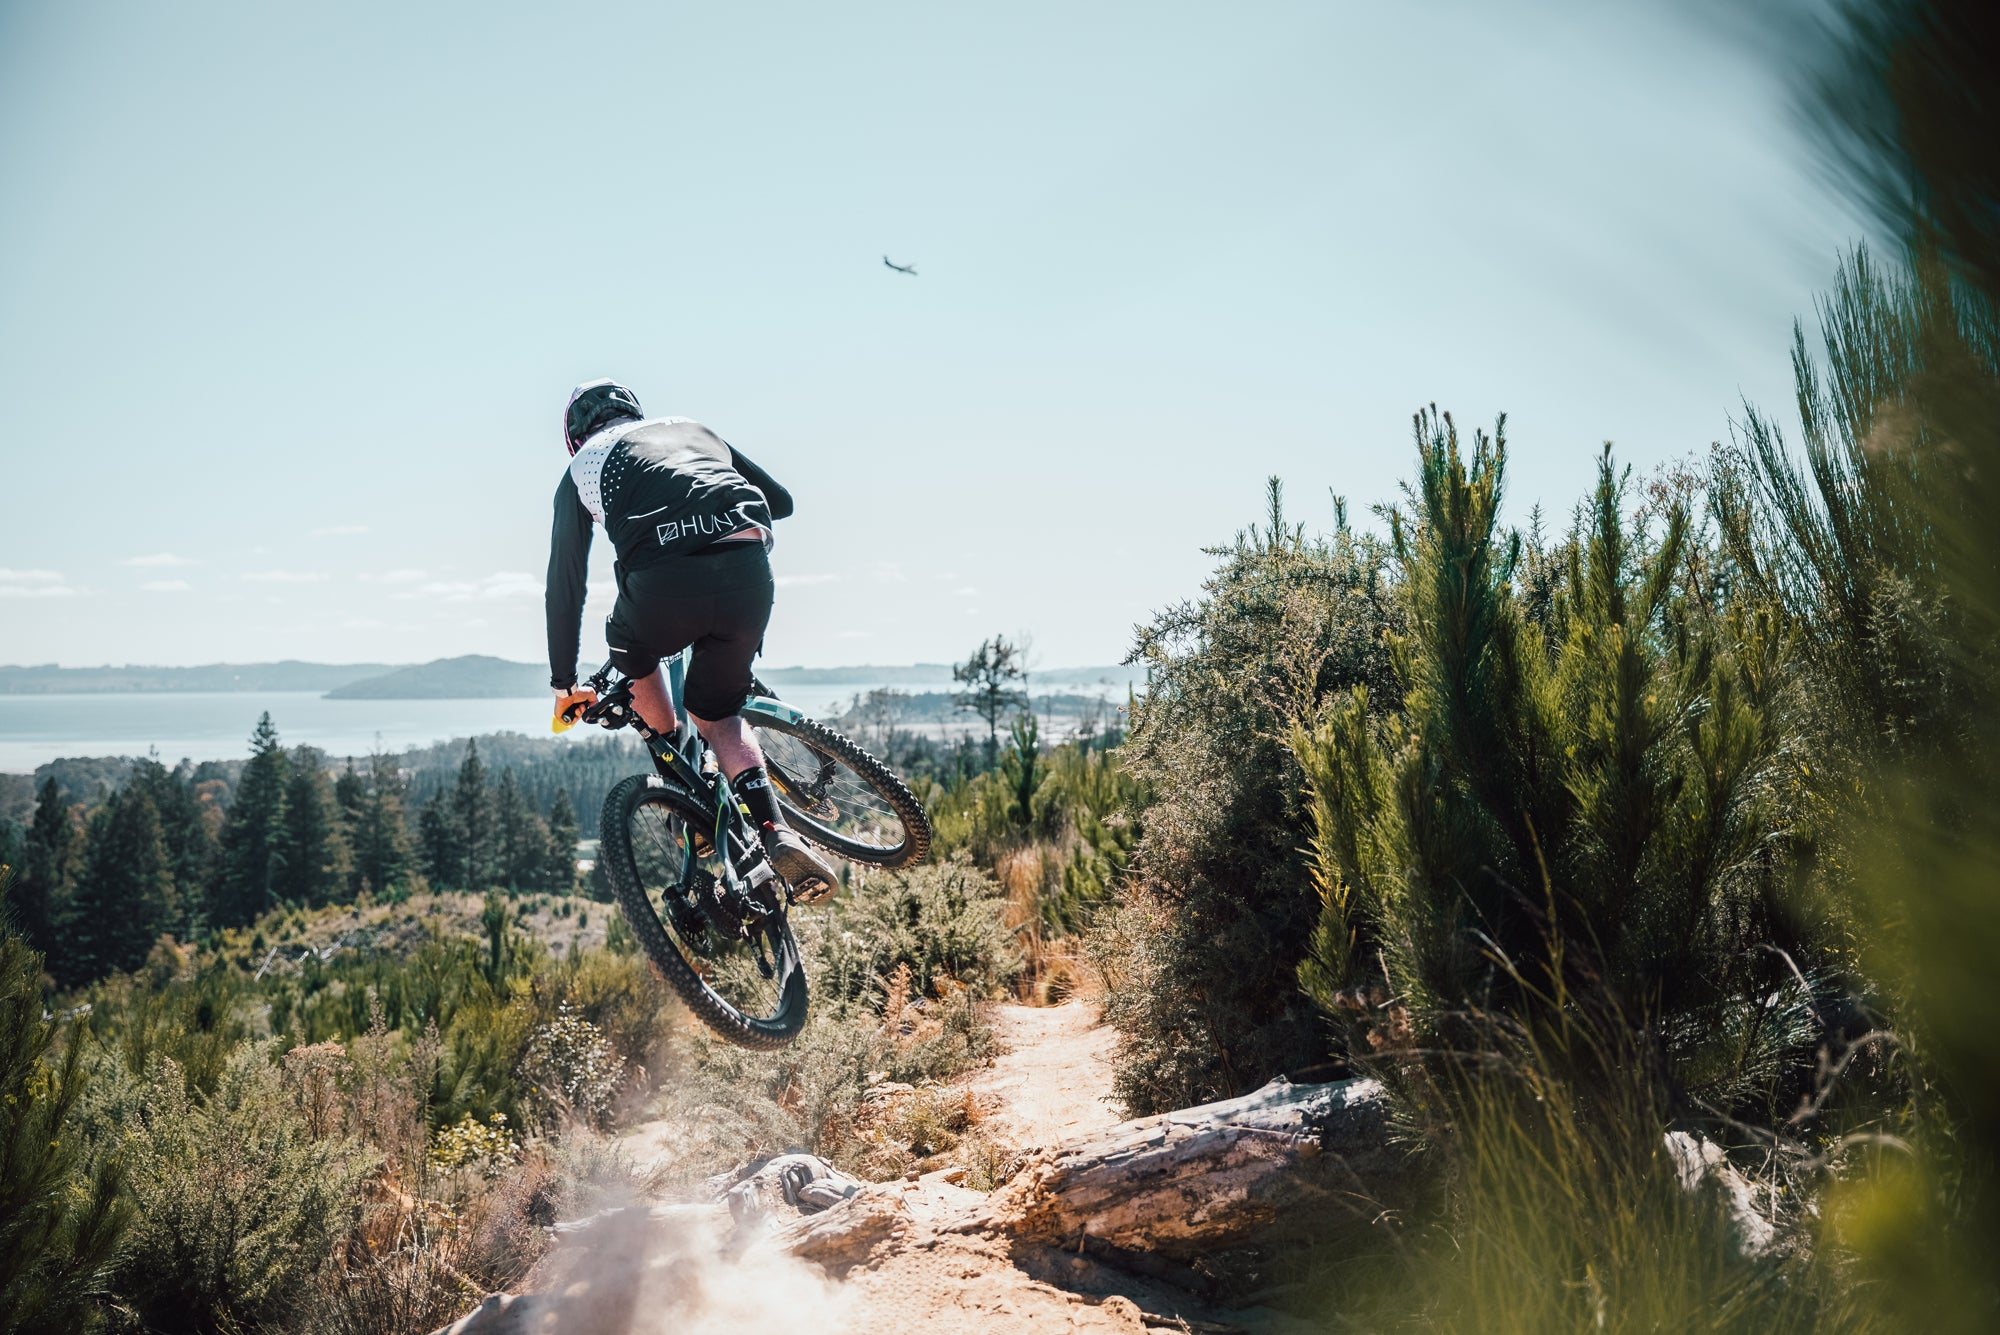 <h1>Weight</h1><i>Mountain bikers aren't concerned about weight, right? Nope! Whether you're doing a back-country epic or pedalling between stages, we have paid attention to weight to suit the type of riding they will be subjected too. For example, using the highest quality Pillar triple butted spokes with PSR (Pillar Spoke Re-enforcement) has allowed us to not only create a stronger wheel with a higher spoke count, but one which does not add a weight penalty.</i>